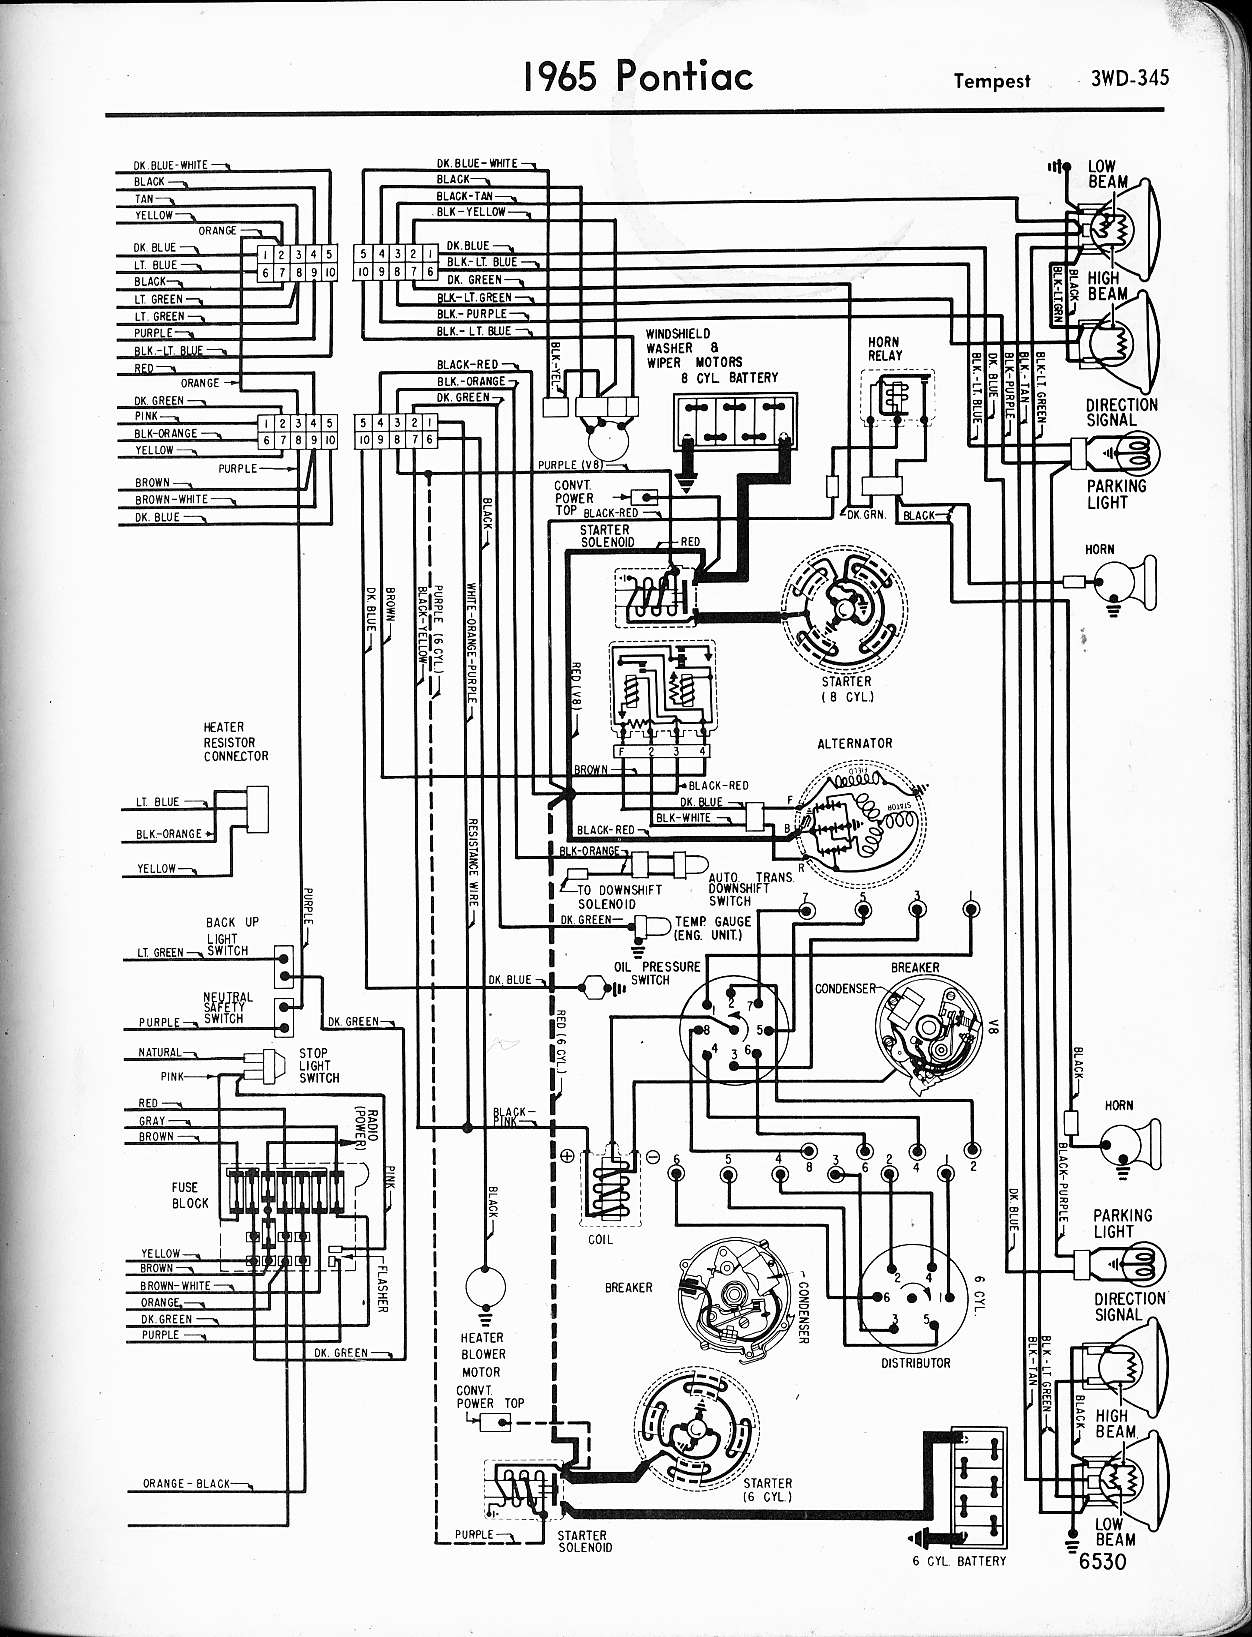 MWire5765 345 69 camaro wiring diagram 69 camaro dash wiring diagram \u2022 free 1966 GTO Engine at panicattacktreatment.co